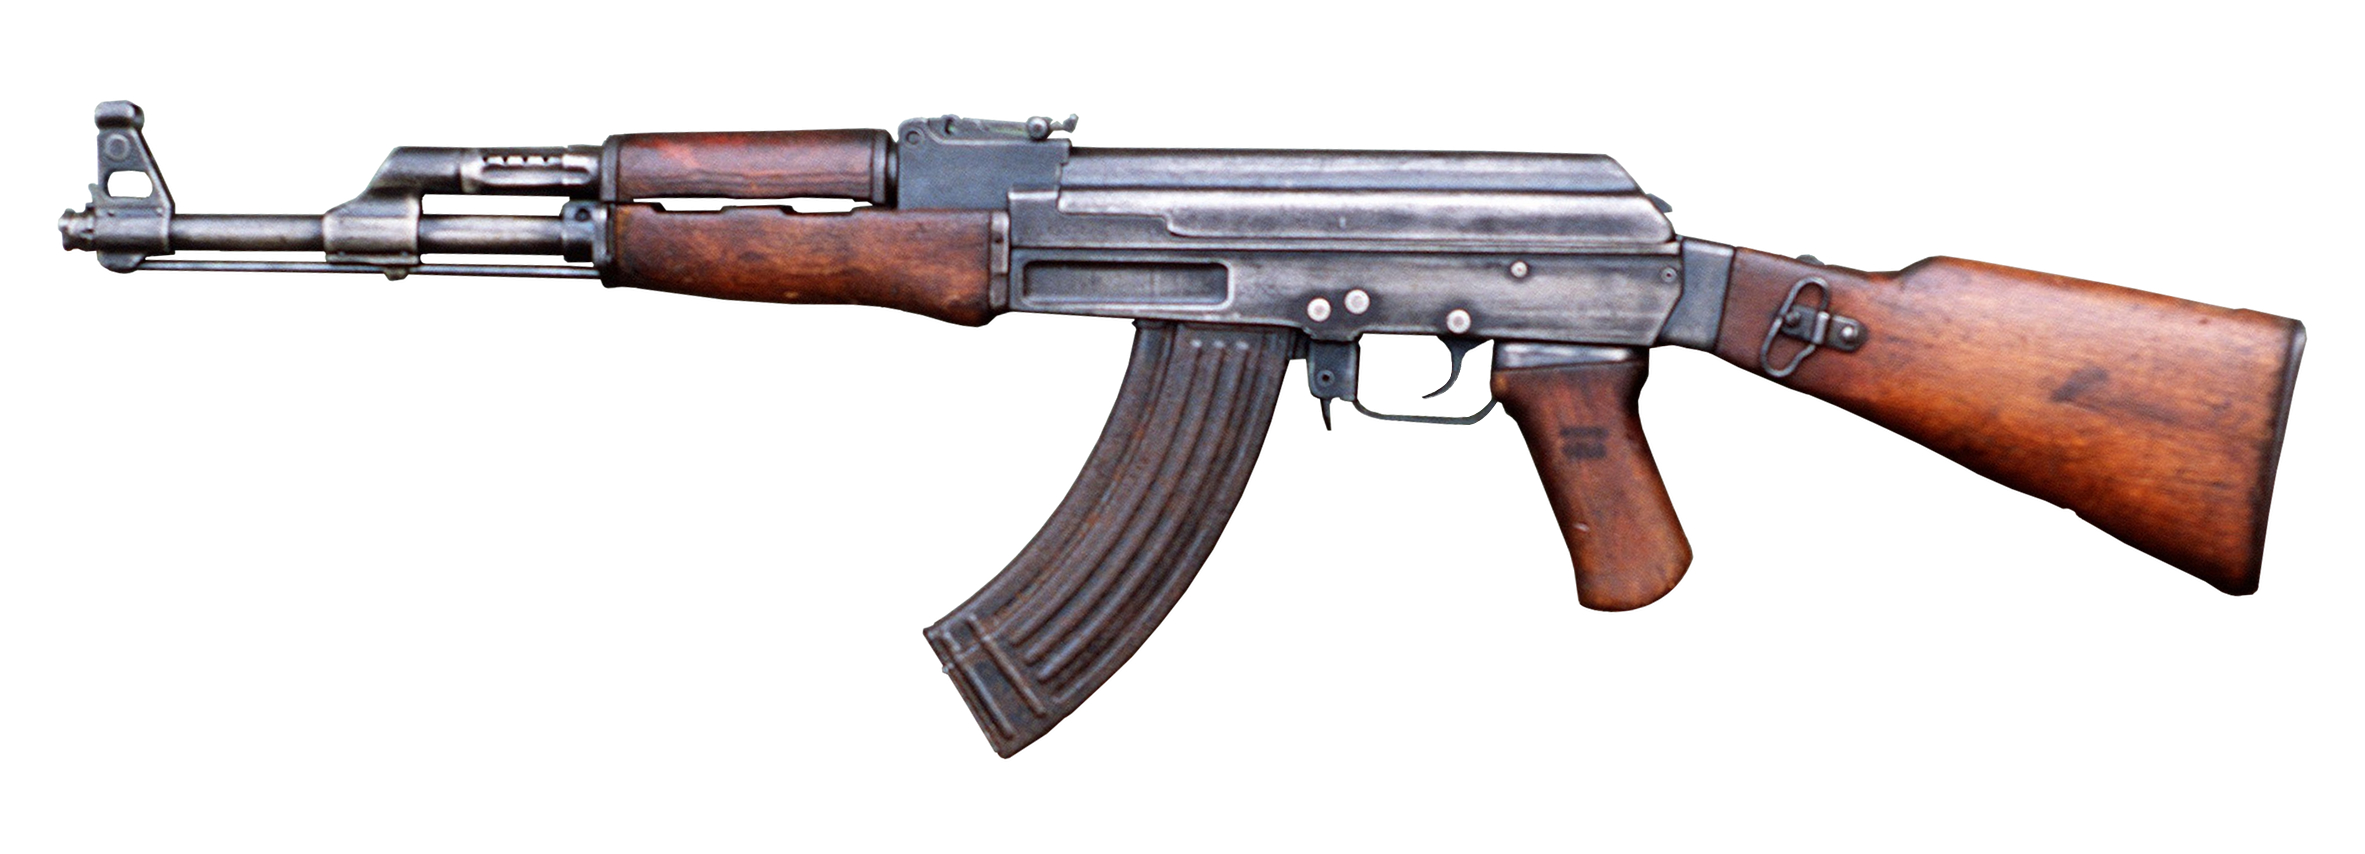 Image:AK-47 type II Part DM-ST-89-01131